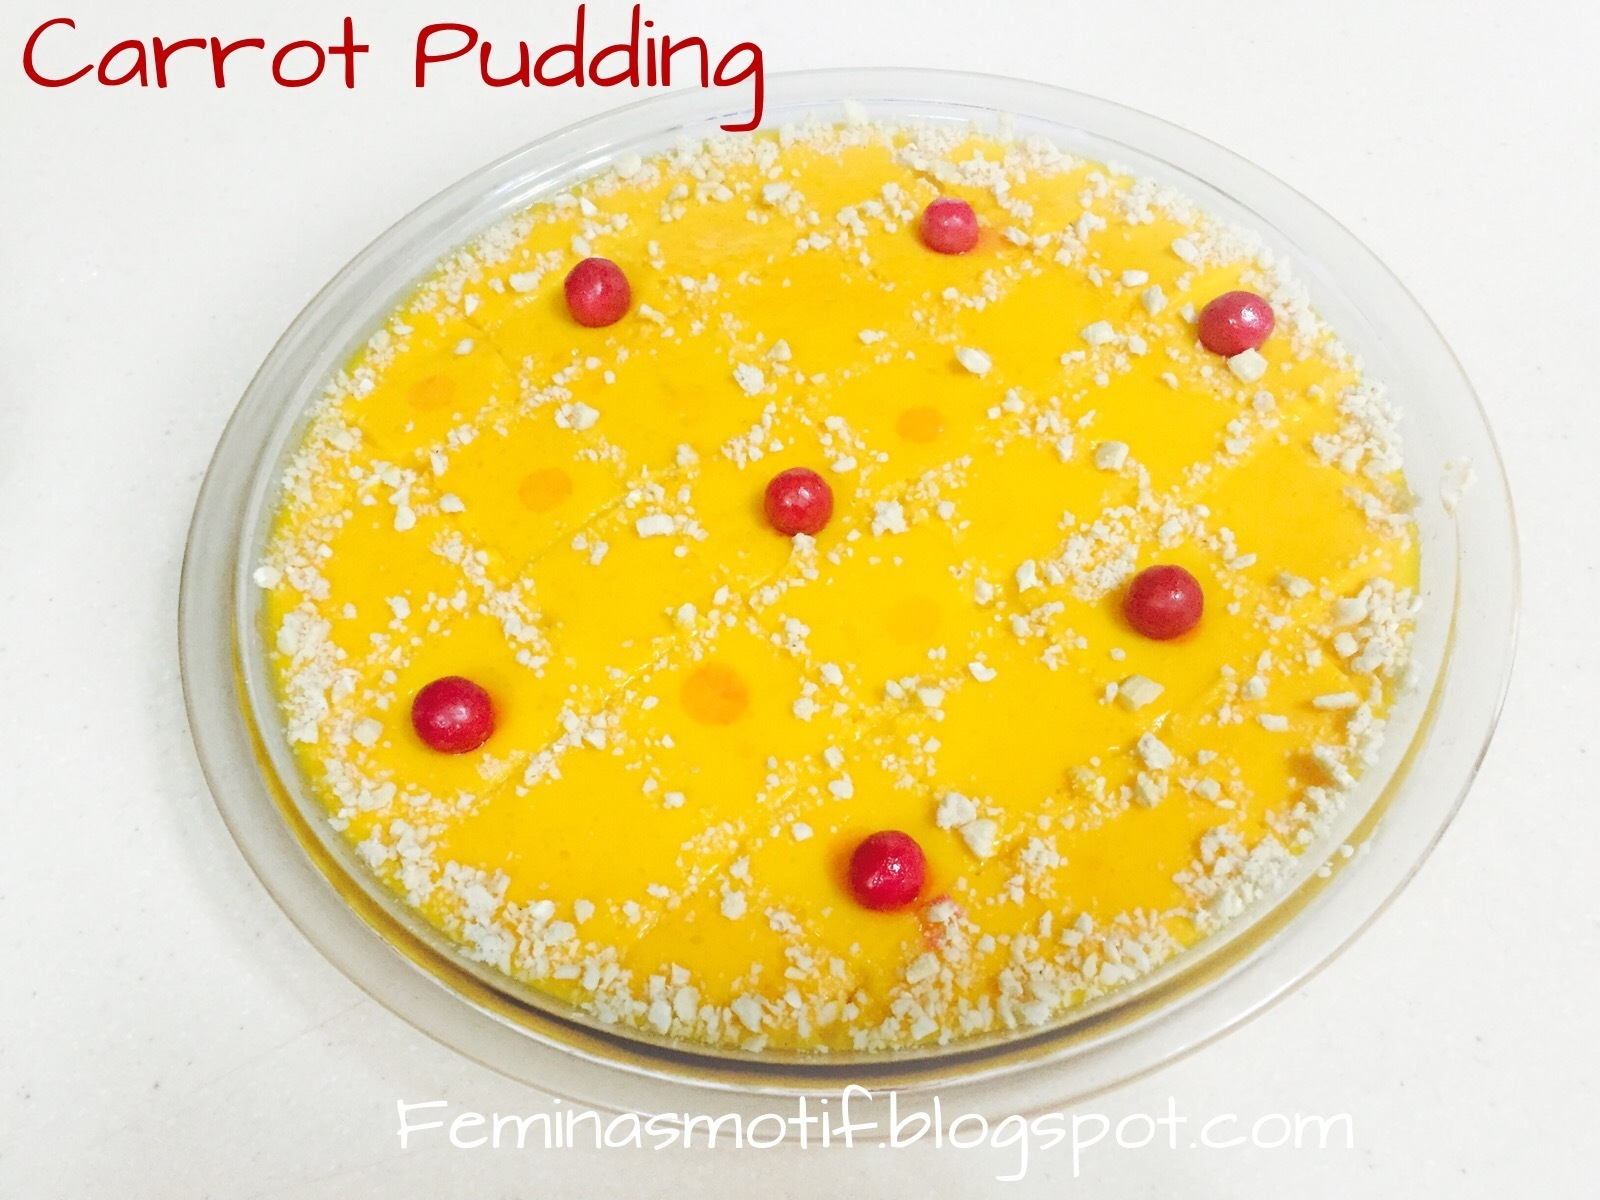 CARROT PUDDING/CARROT-NUTS PUDDING